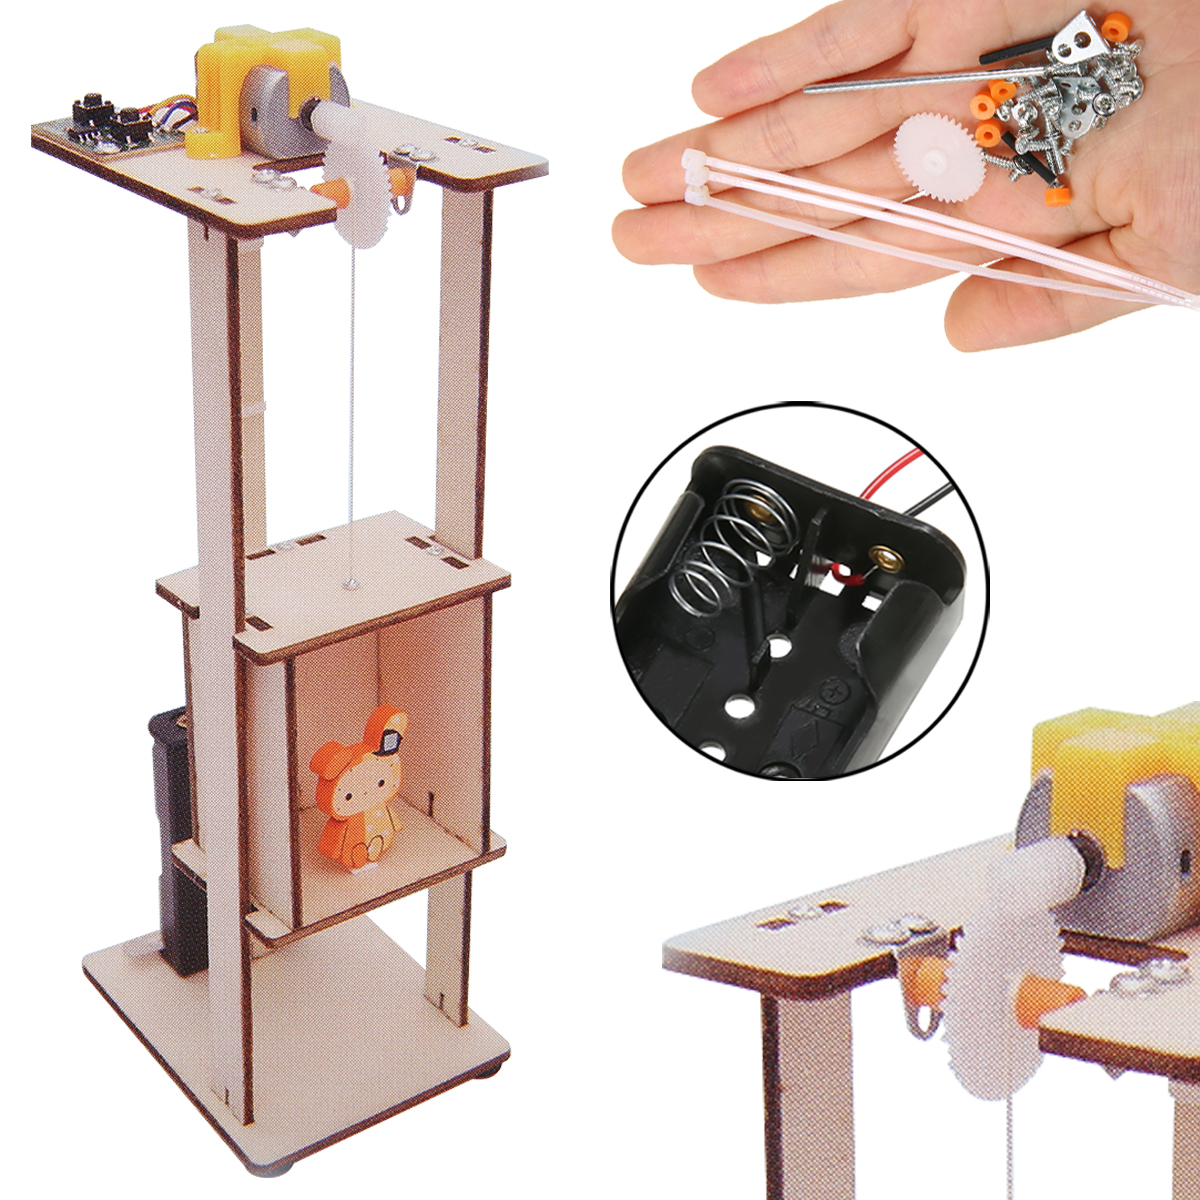 Wood Assemble DIY Electric Lift Kids Gifts Science Toys Experiment Material Kits Tool Elevator Assemble Kit For Education